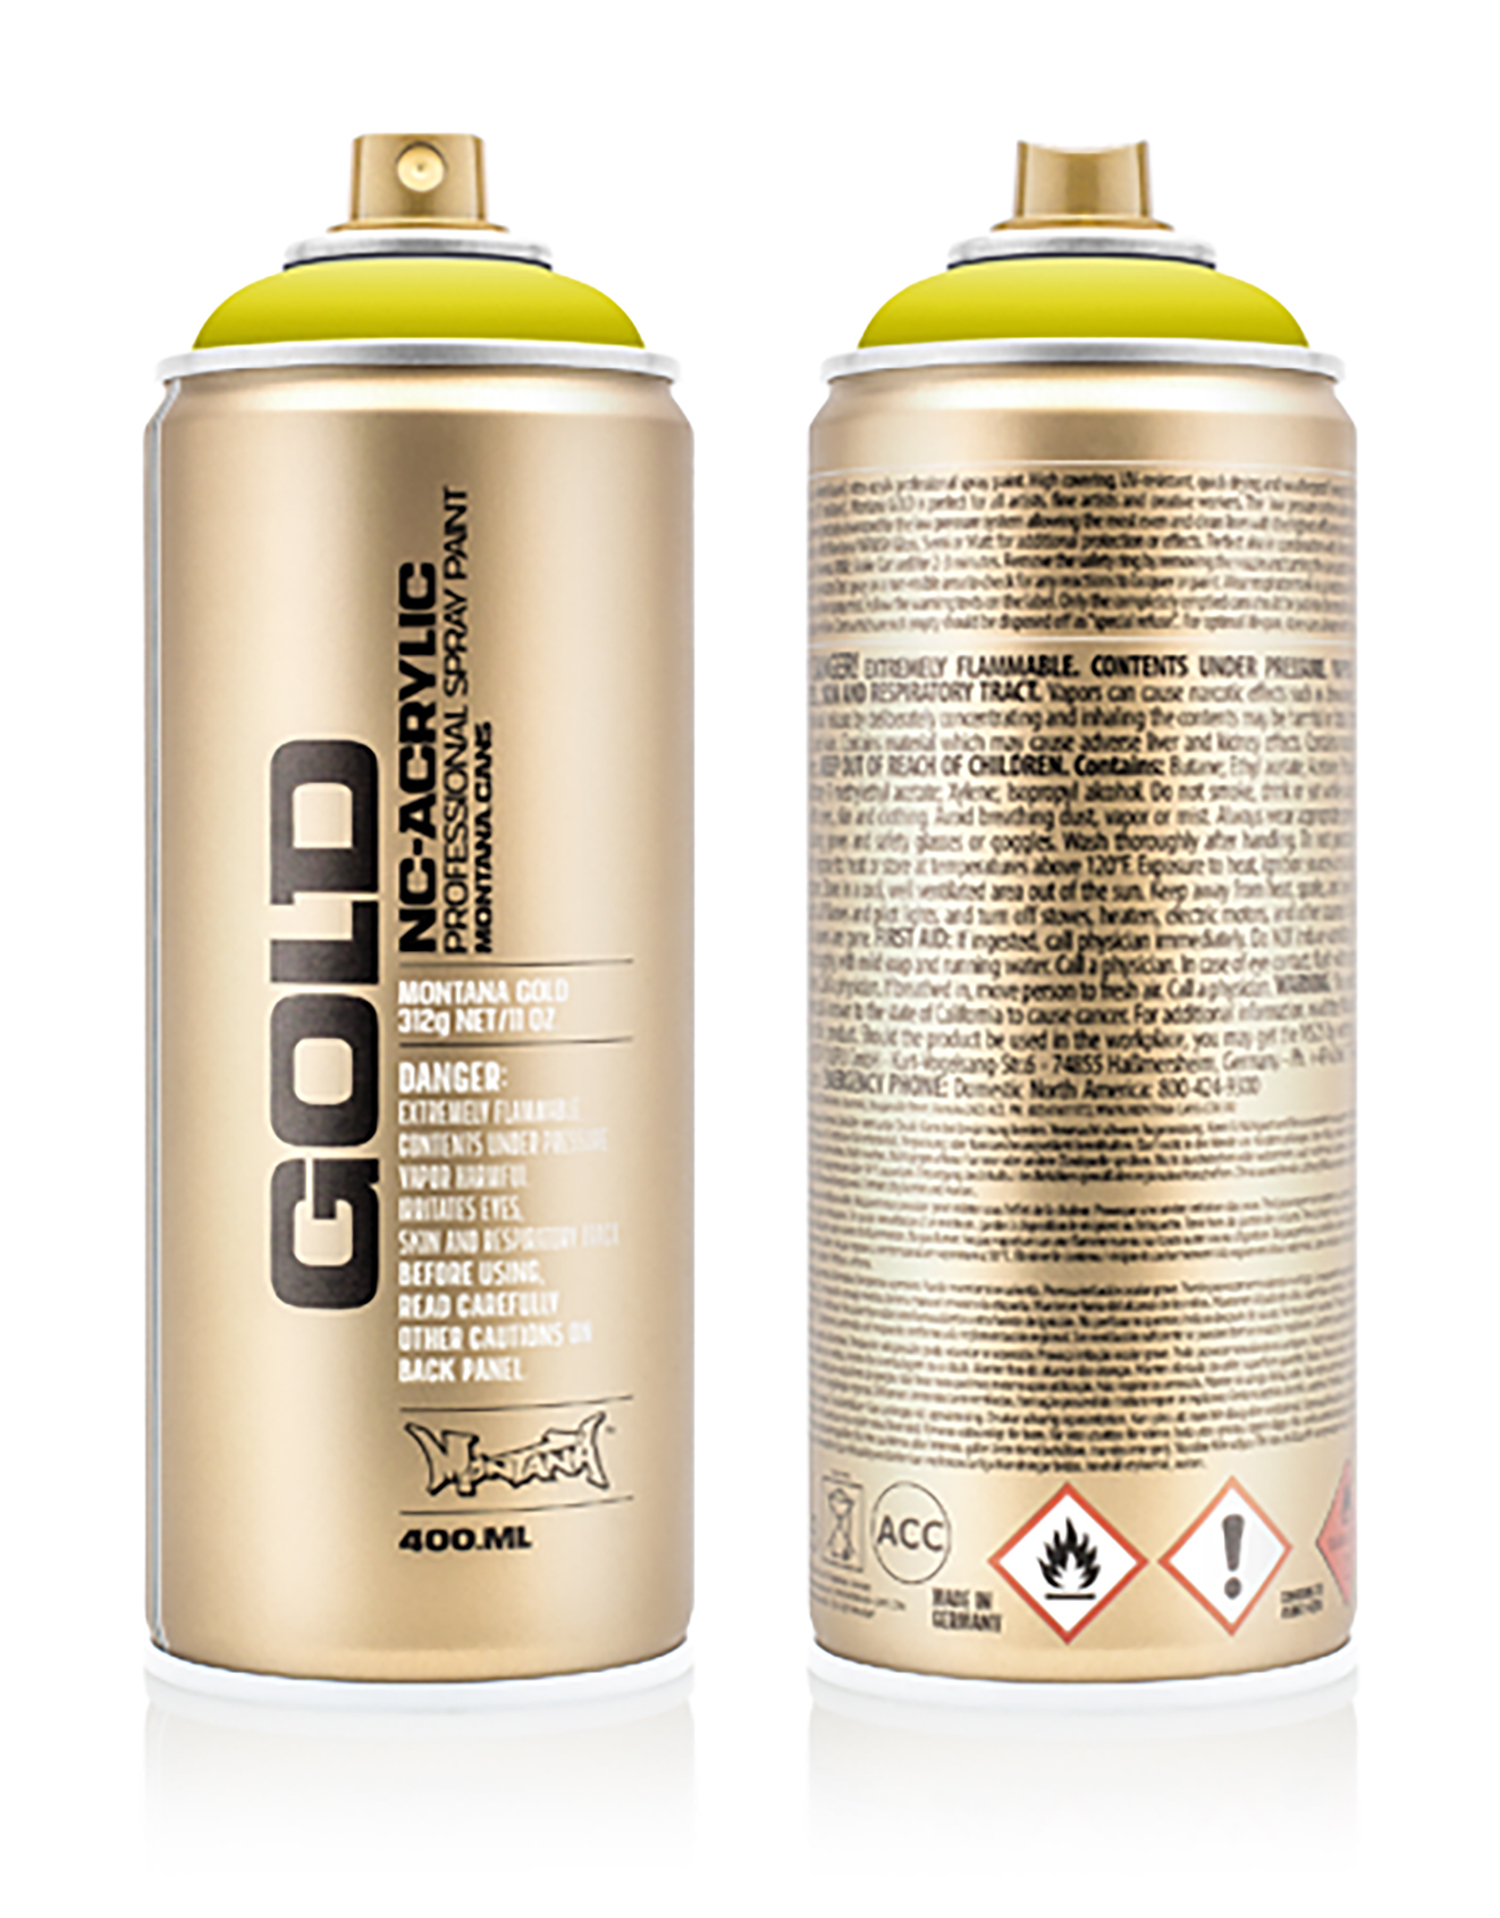 MONTANA-GOLD-SPRAY-400ML-G-1120